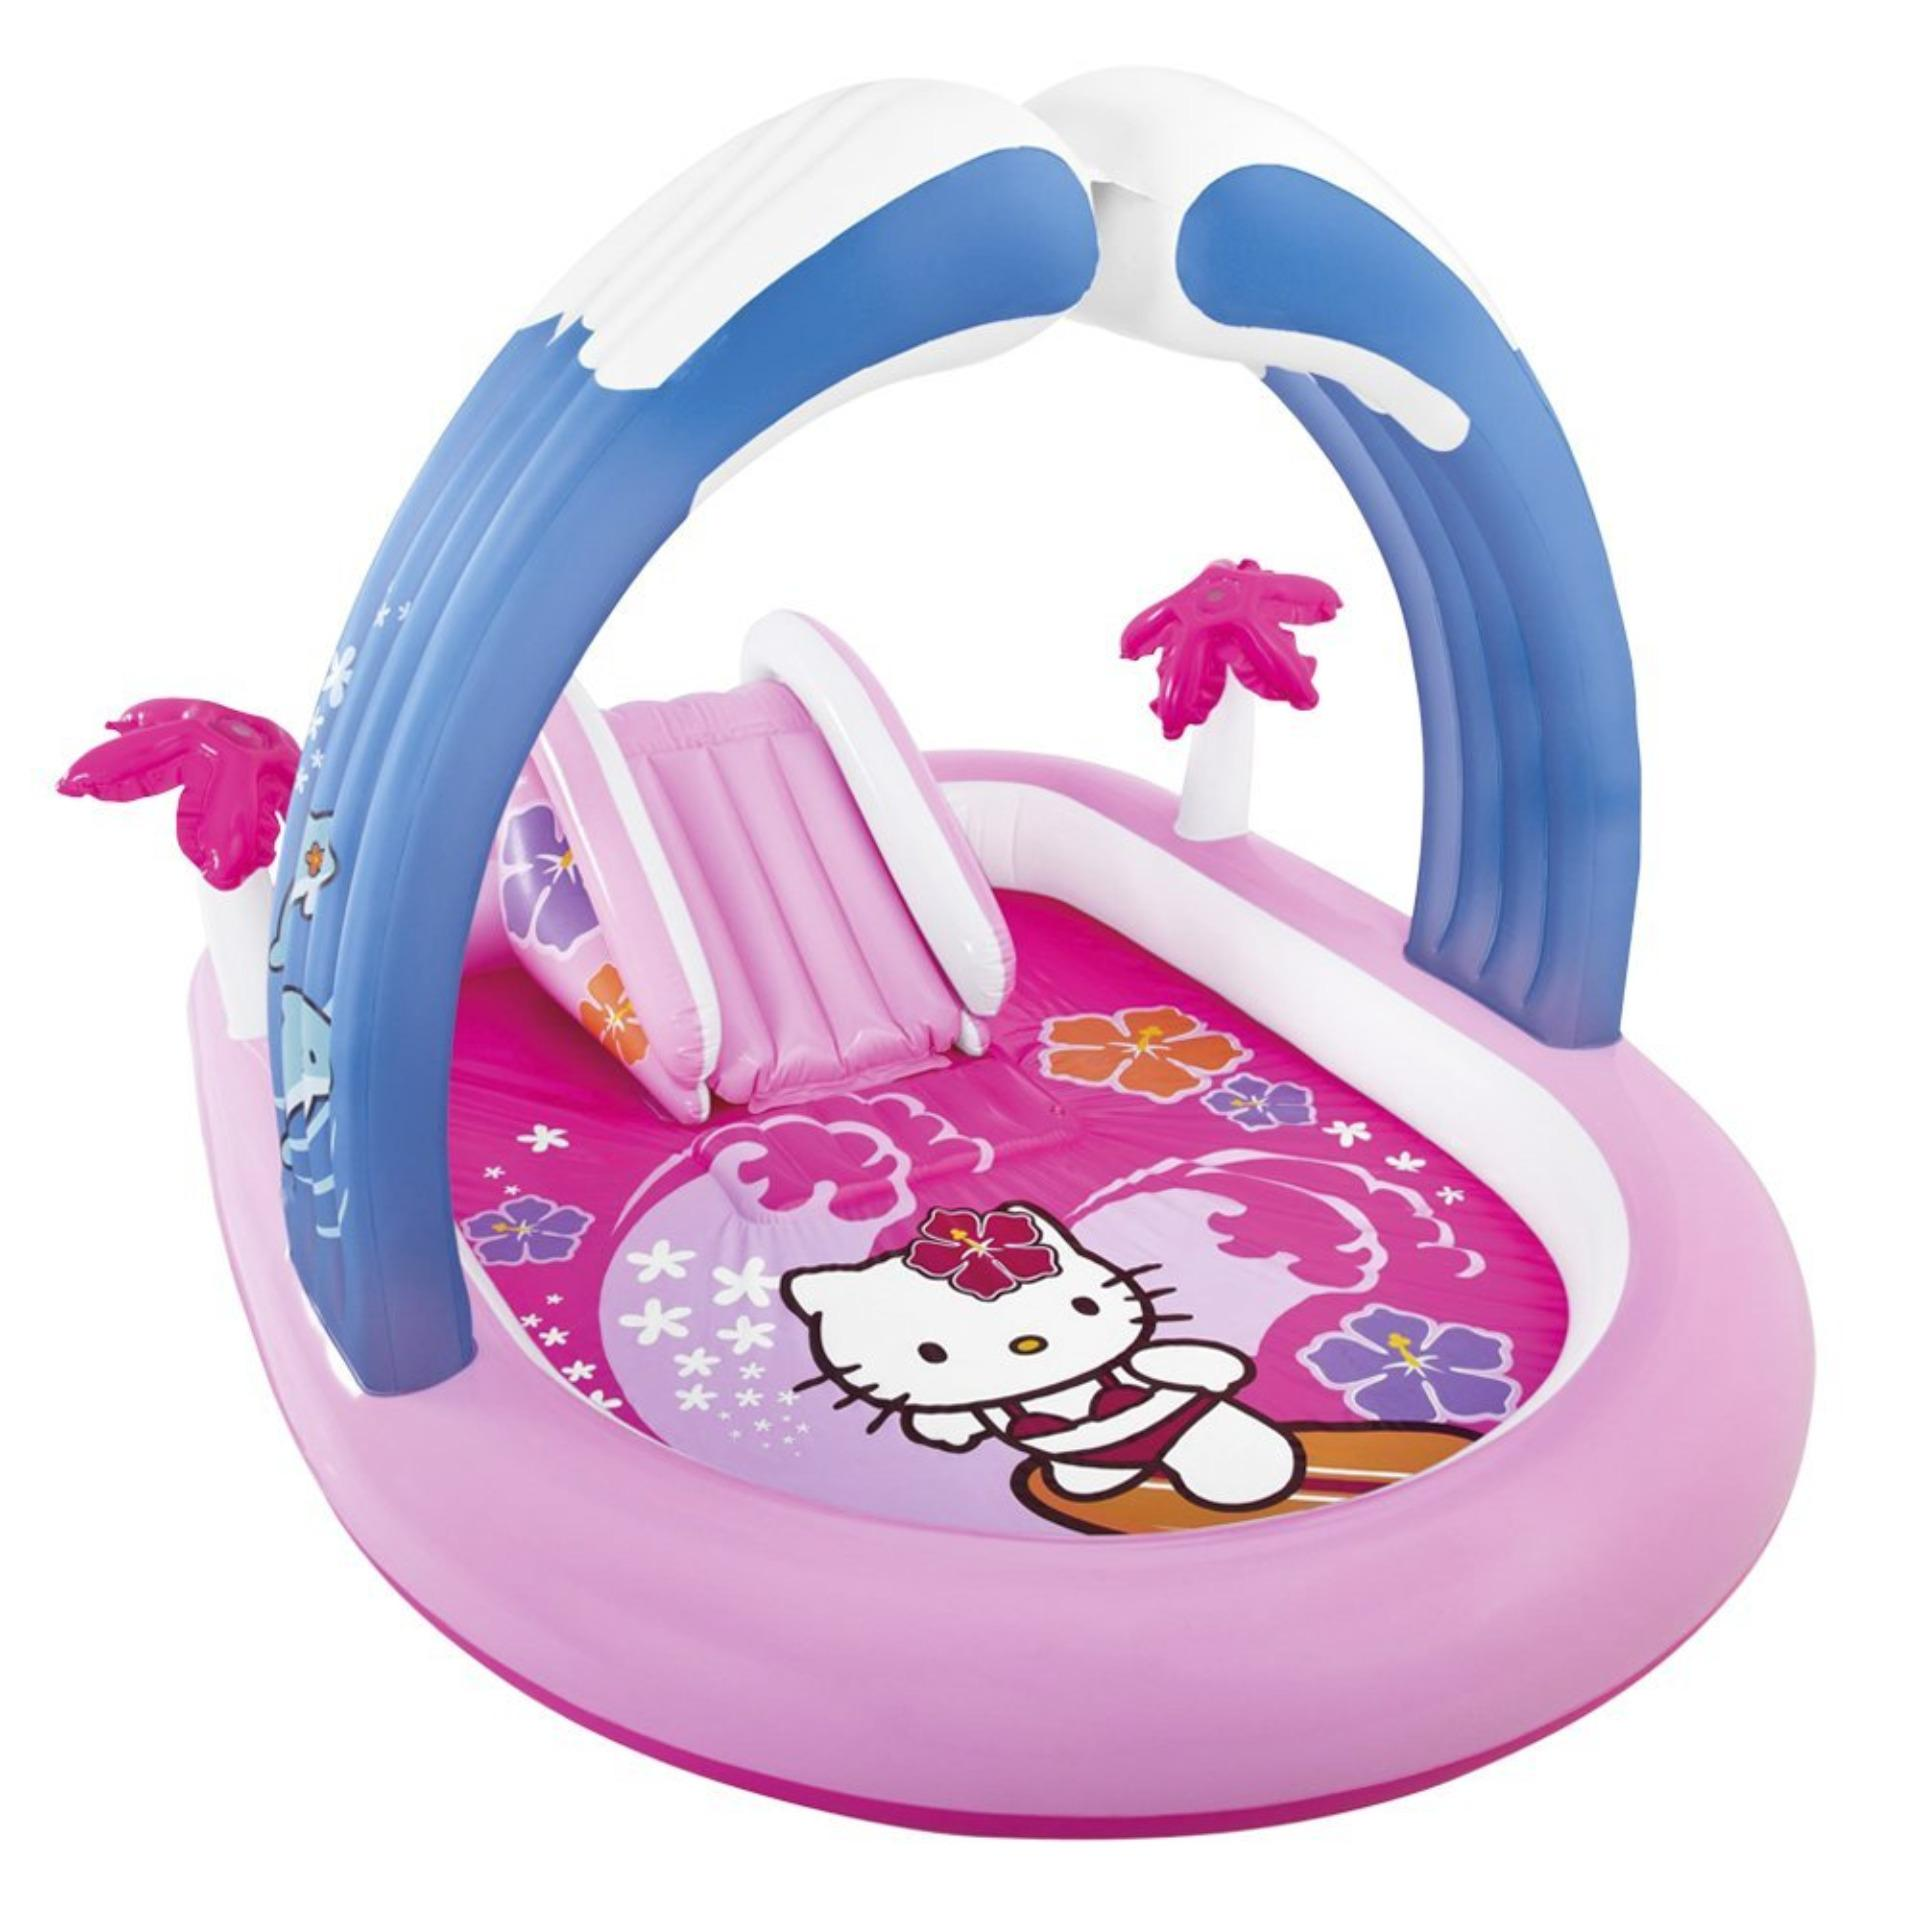 ... Intex Hello Kitty Slide Play Center (Pink) Kolam Renang PerosotanAnak 57137 ...